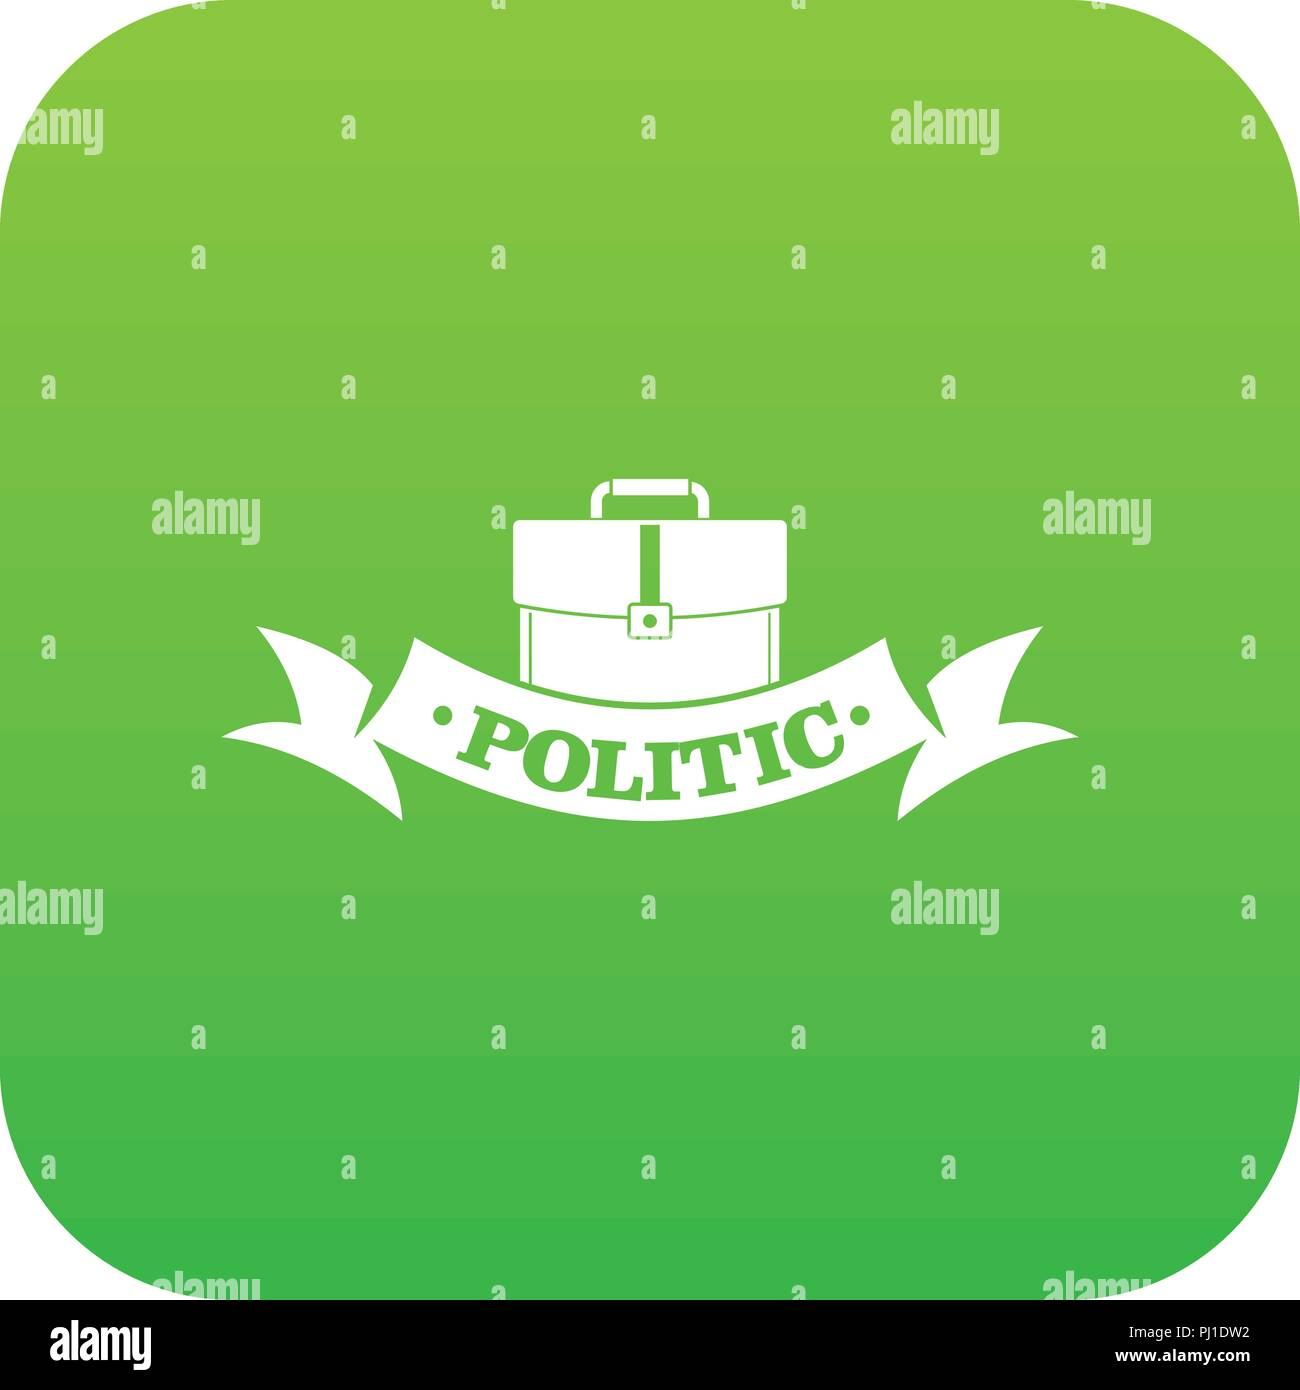 Politic icon green vector - Stock Image